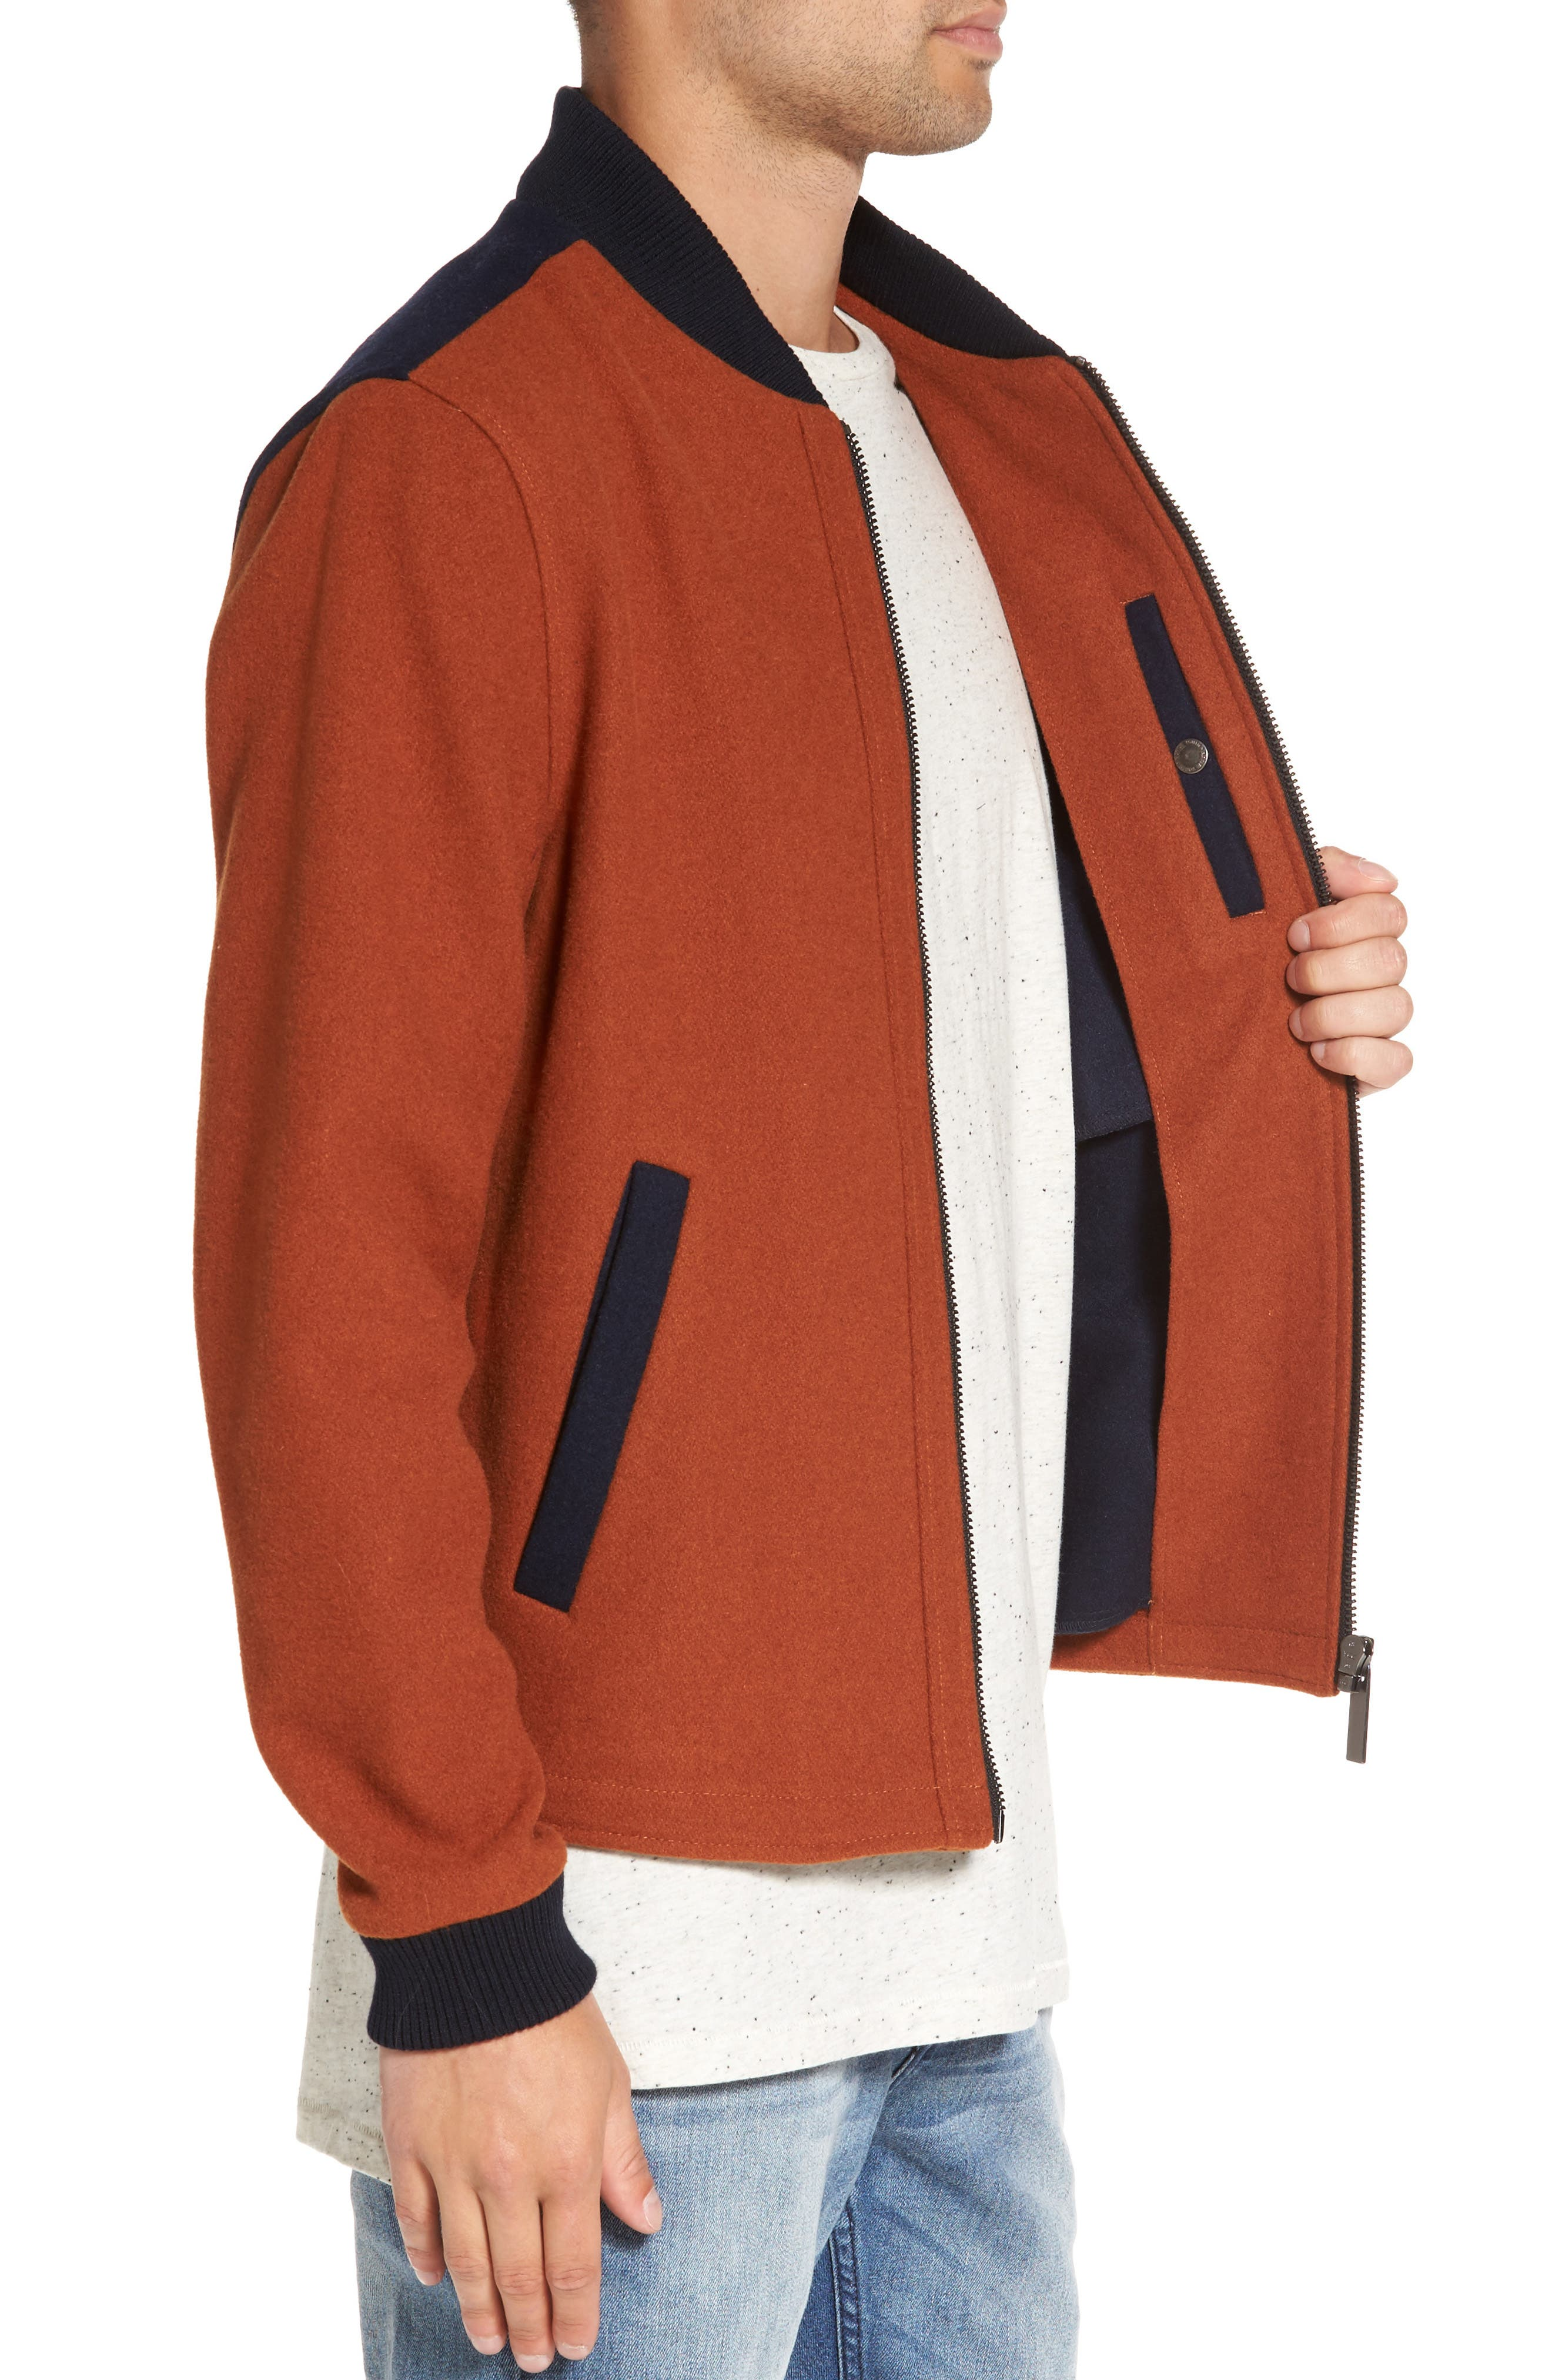 Maldon Bomber Jacket,                             Alternate thumbnail 3, color,                             800